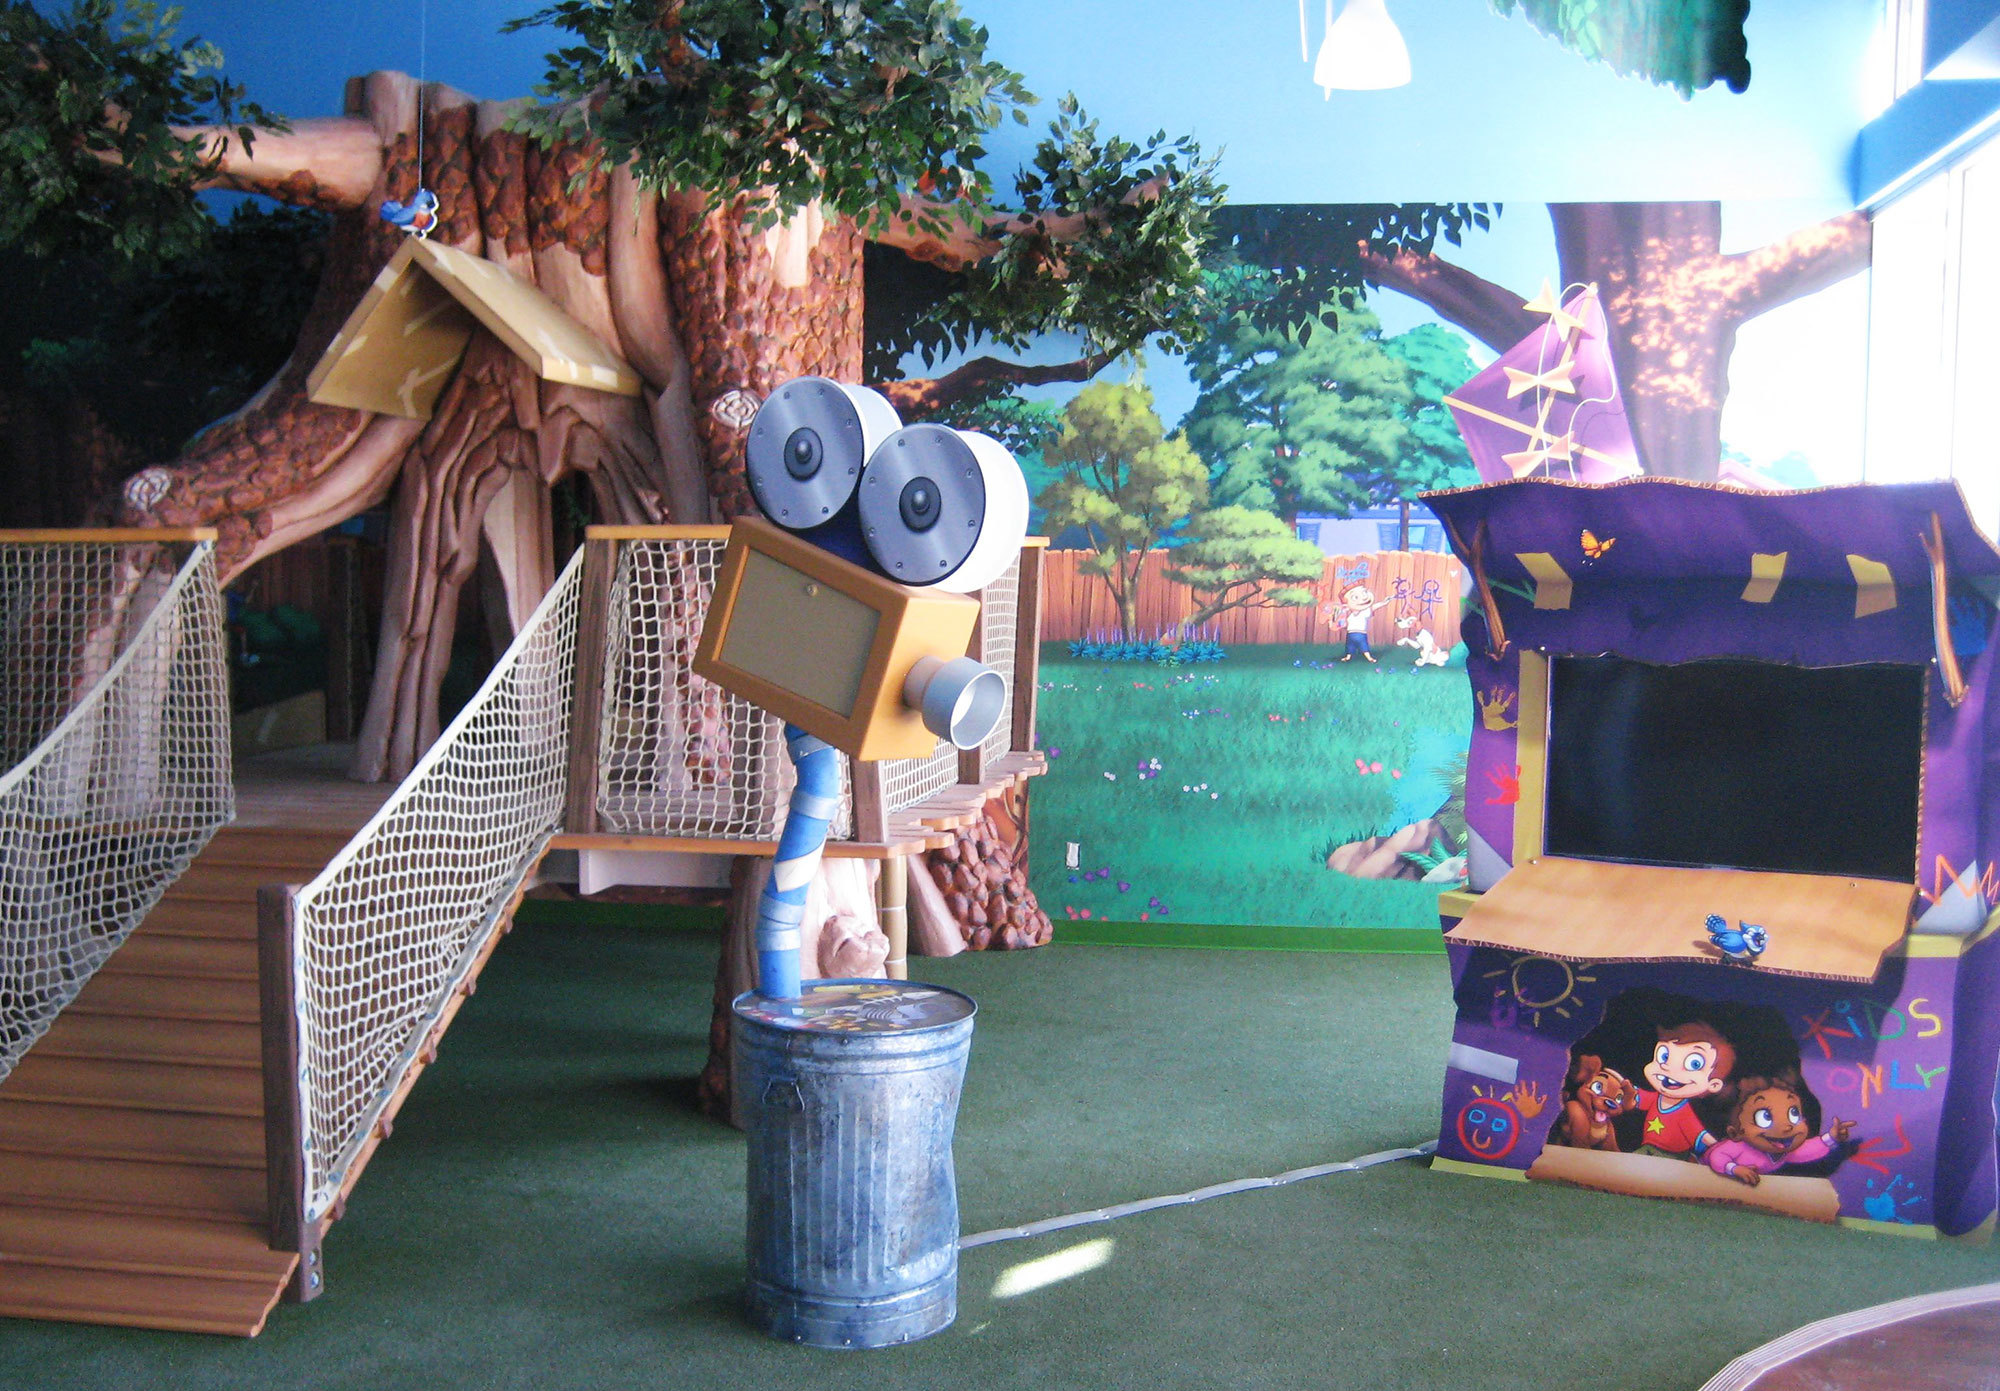 Treehouse and Neighborhood Themed Environment at Ashley's Playhouse